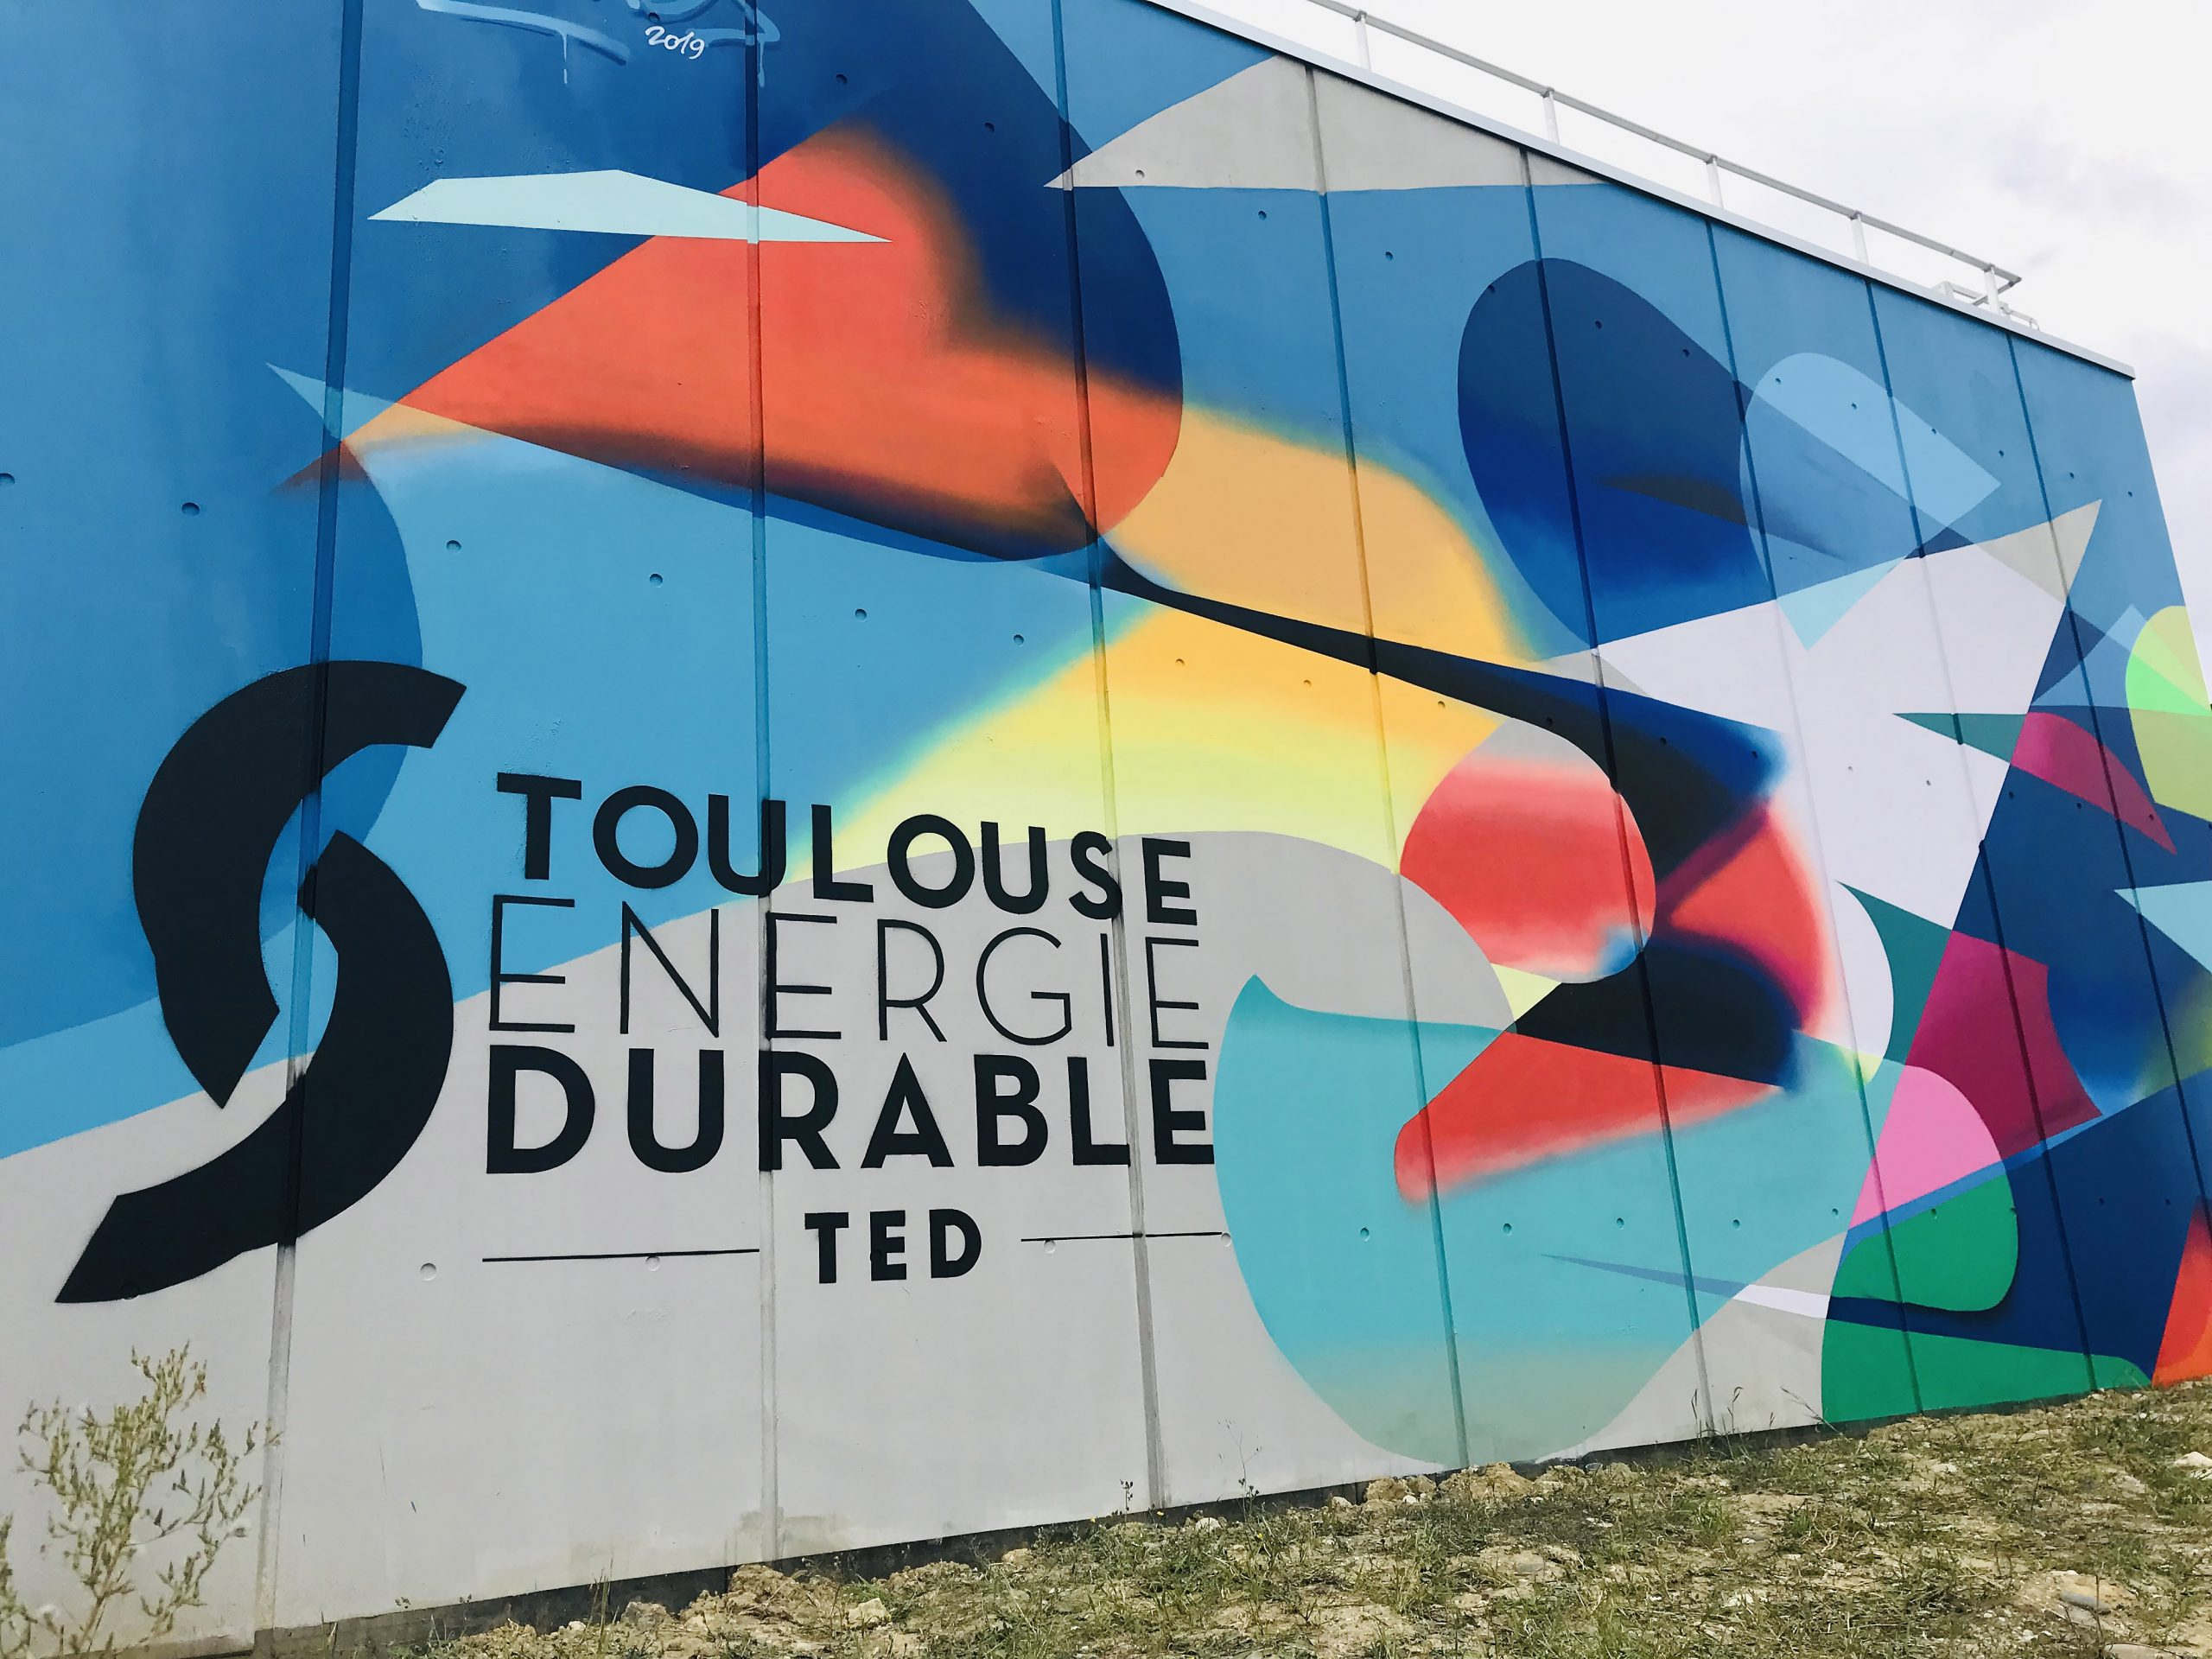 B4B-Toulouse-energie-durable-ted-metropole-chaufferie-dalkia